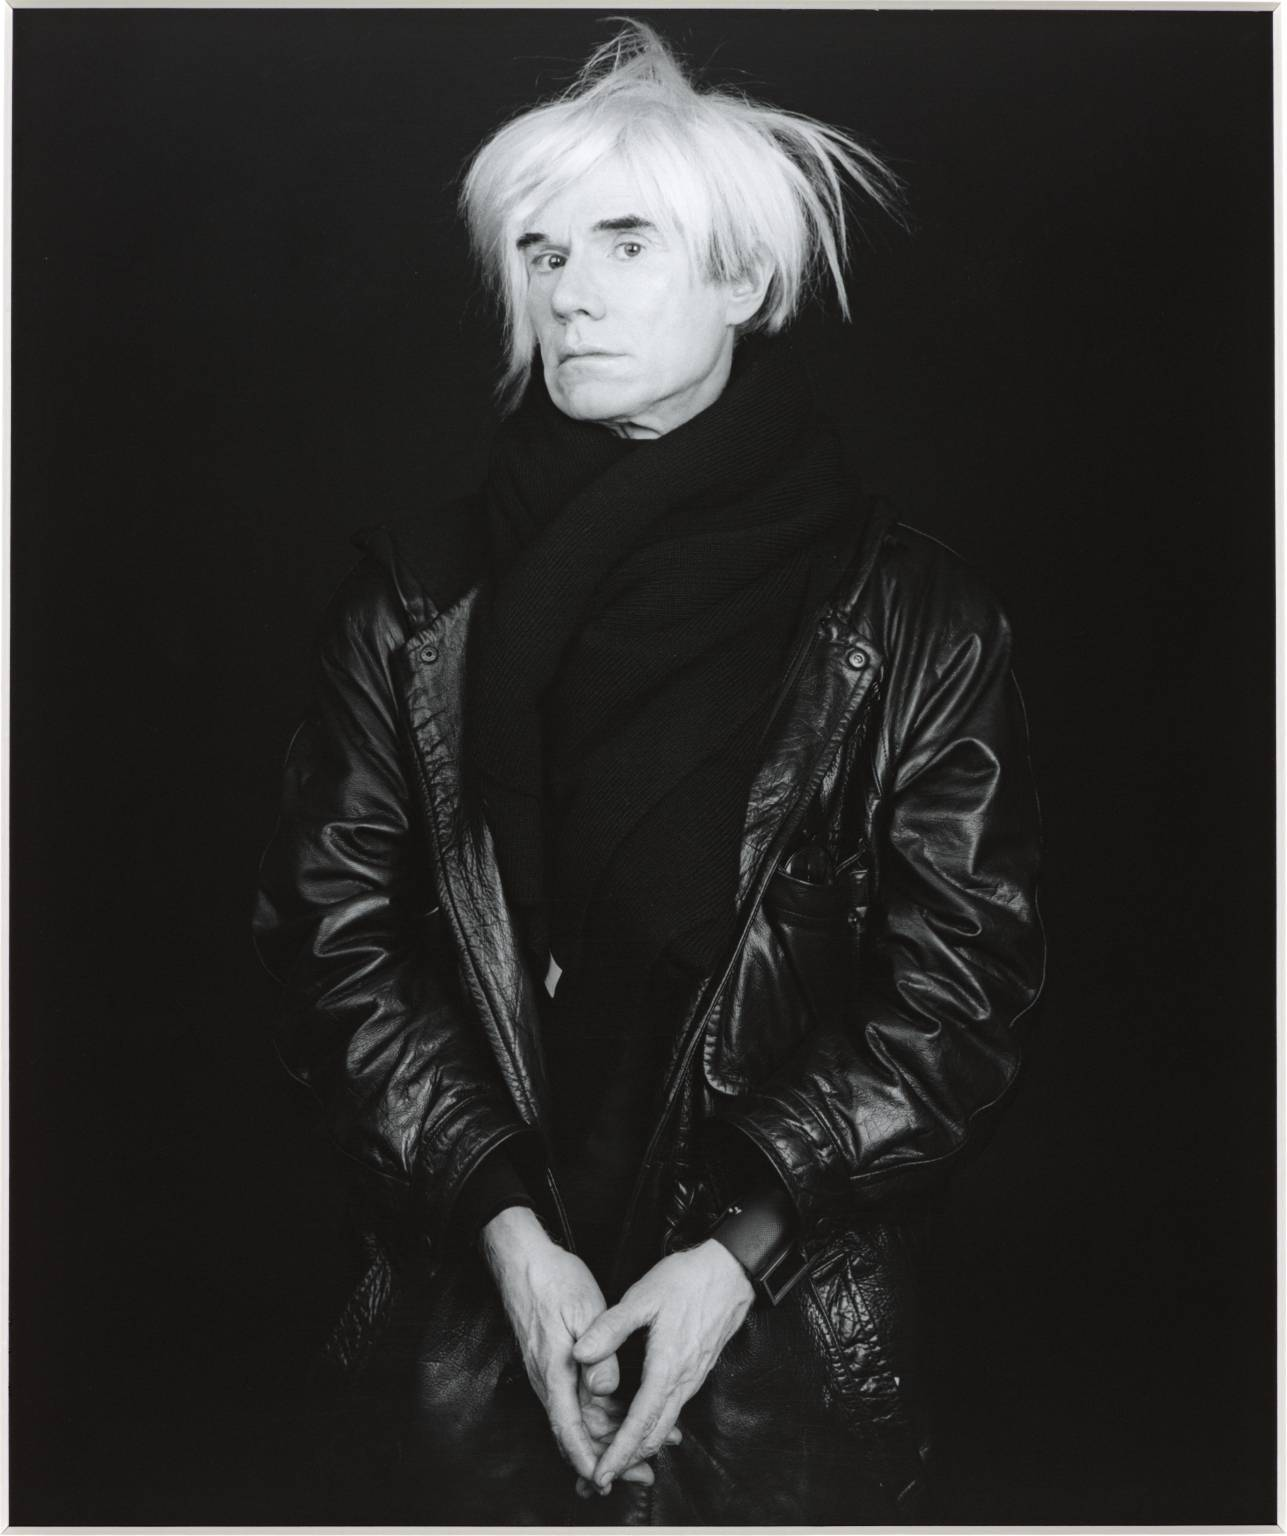 Andy Warhol', Robert Mapplethorpe, 1986, printed 1990 | Tate